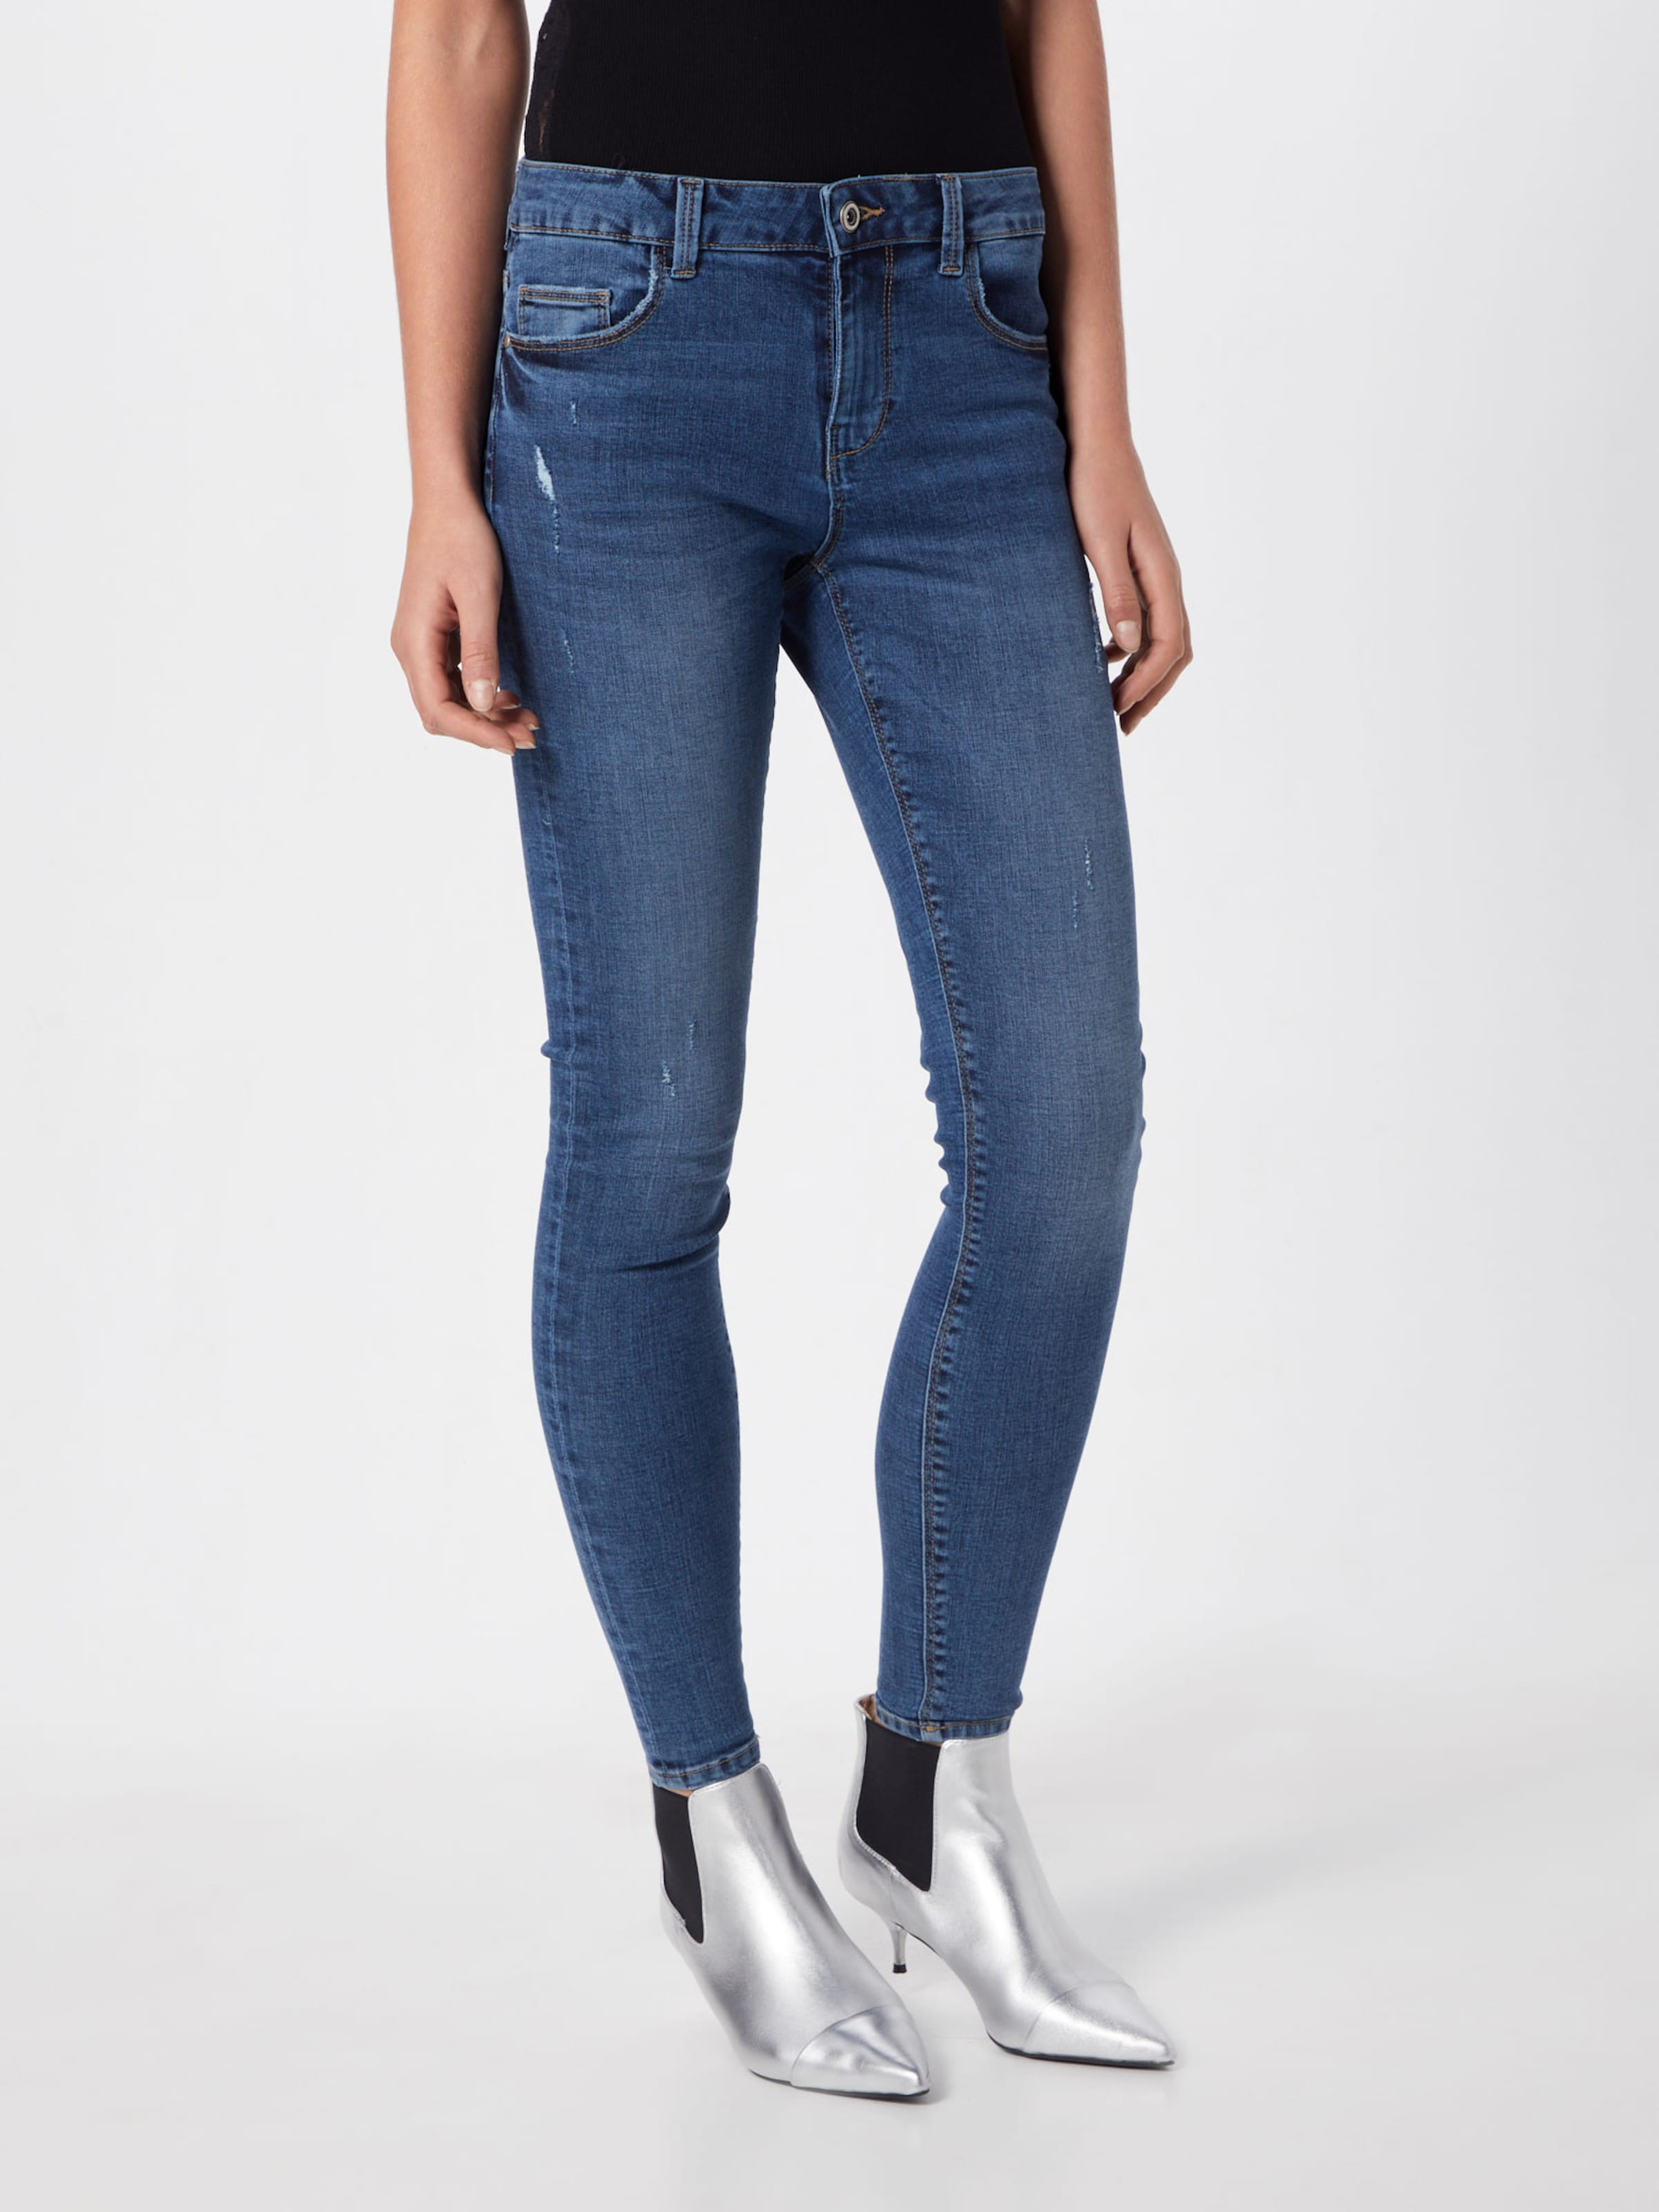 Jean Denim 'bree' Pieces Bleu En 0X8kwOPNn